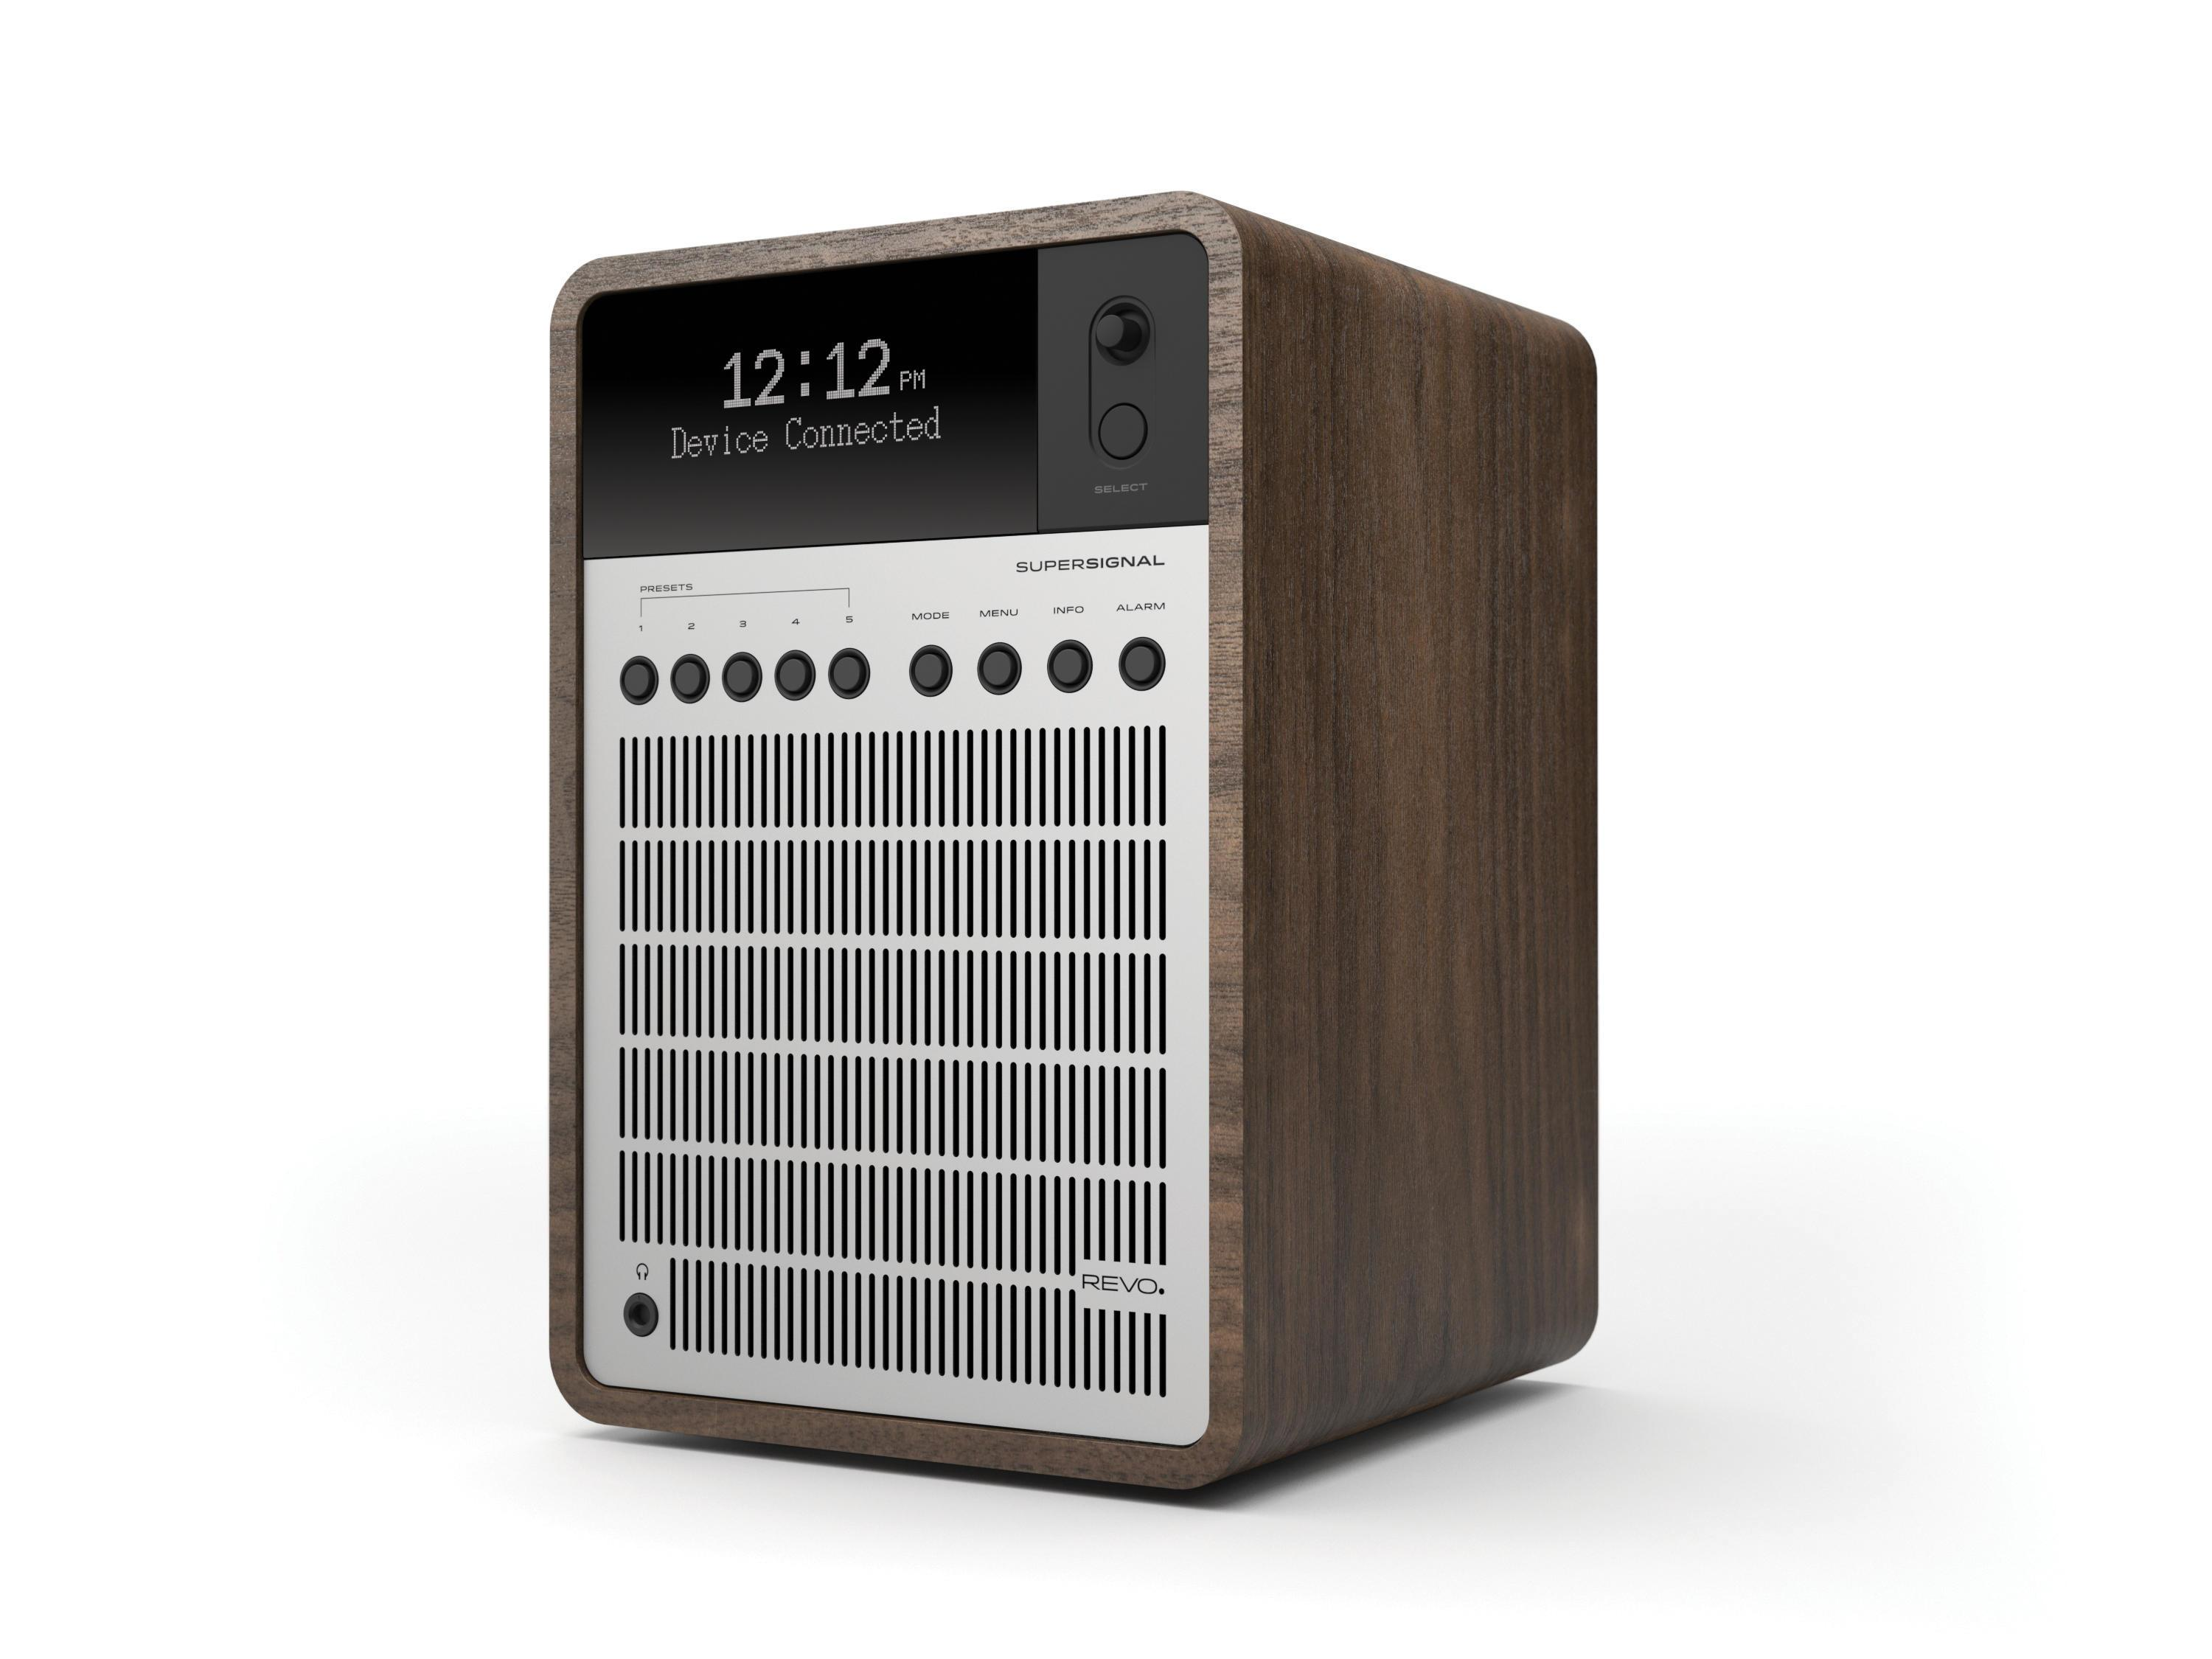 Revo SuperSignal DAB Radio with Bluetooth - Walnut / Silver